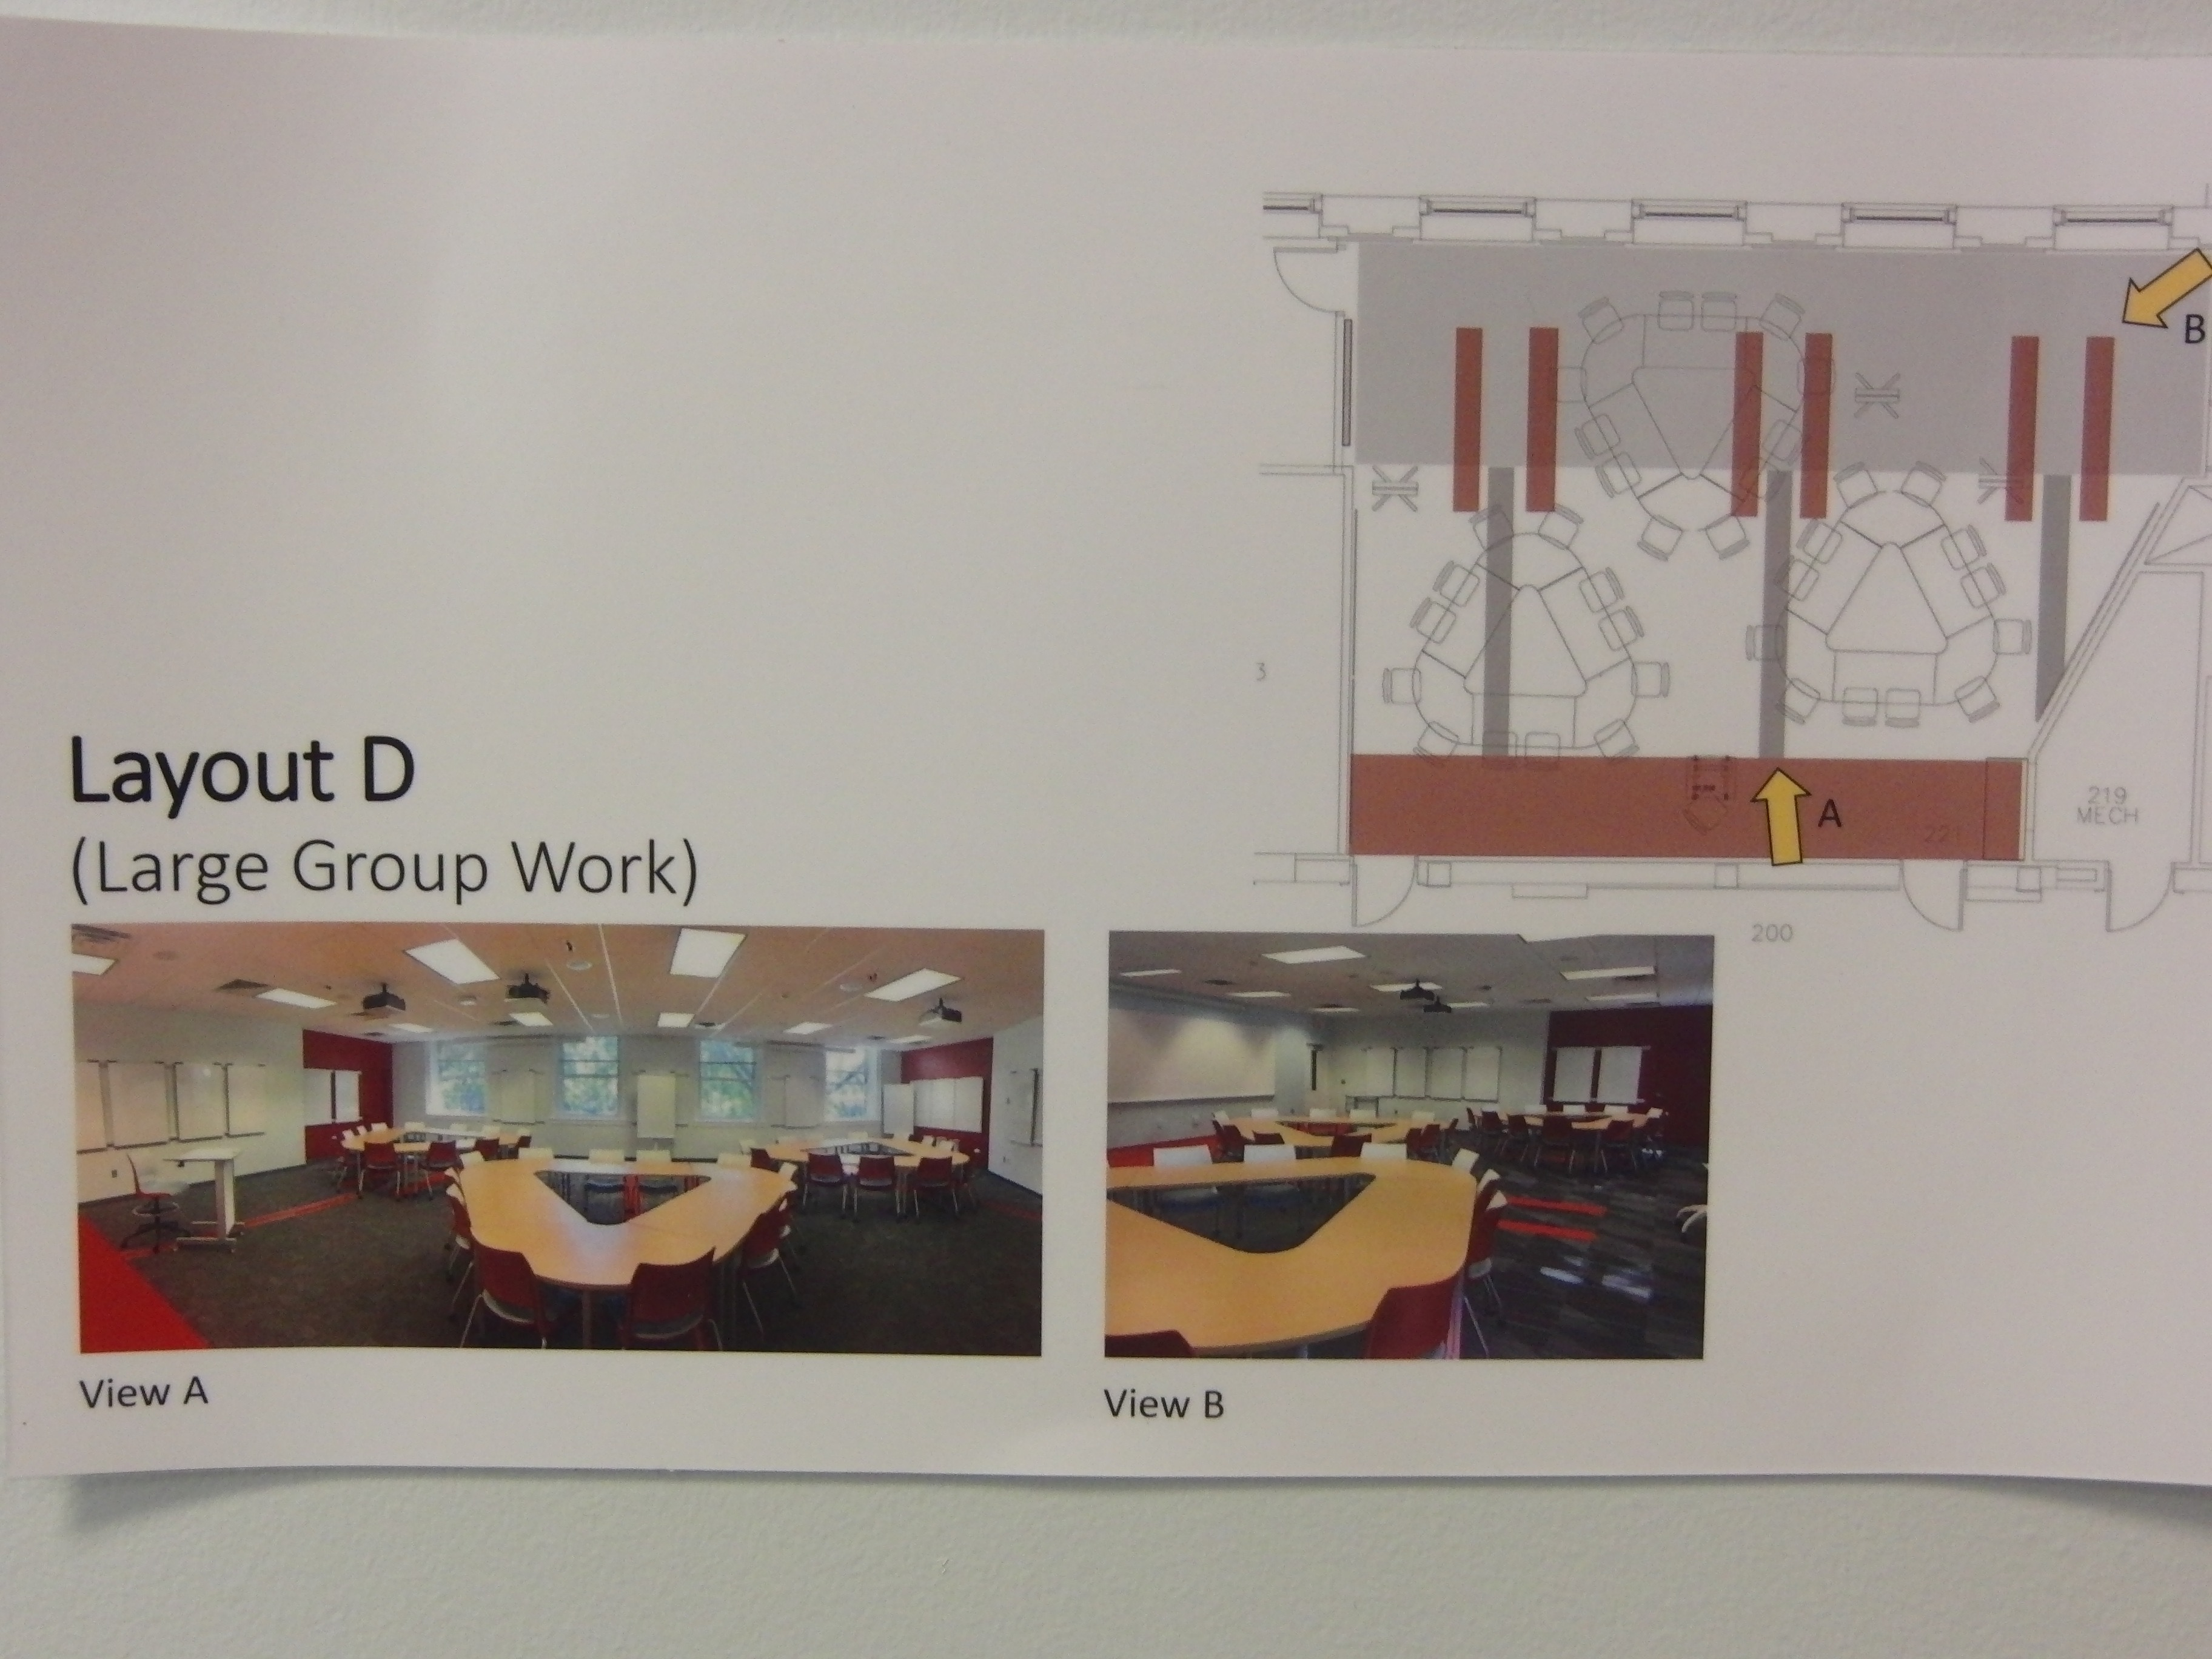 Photo of room configuration for large group work described as layout d